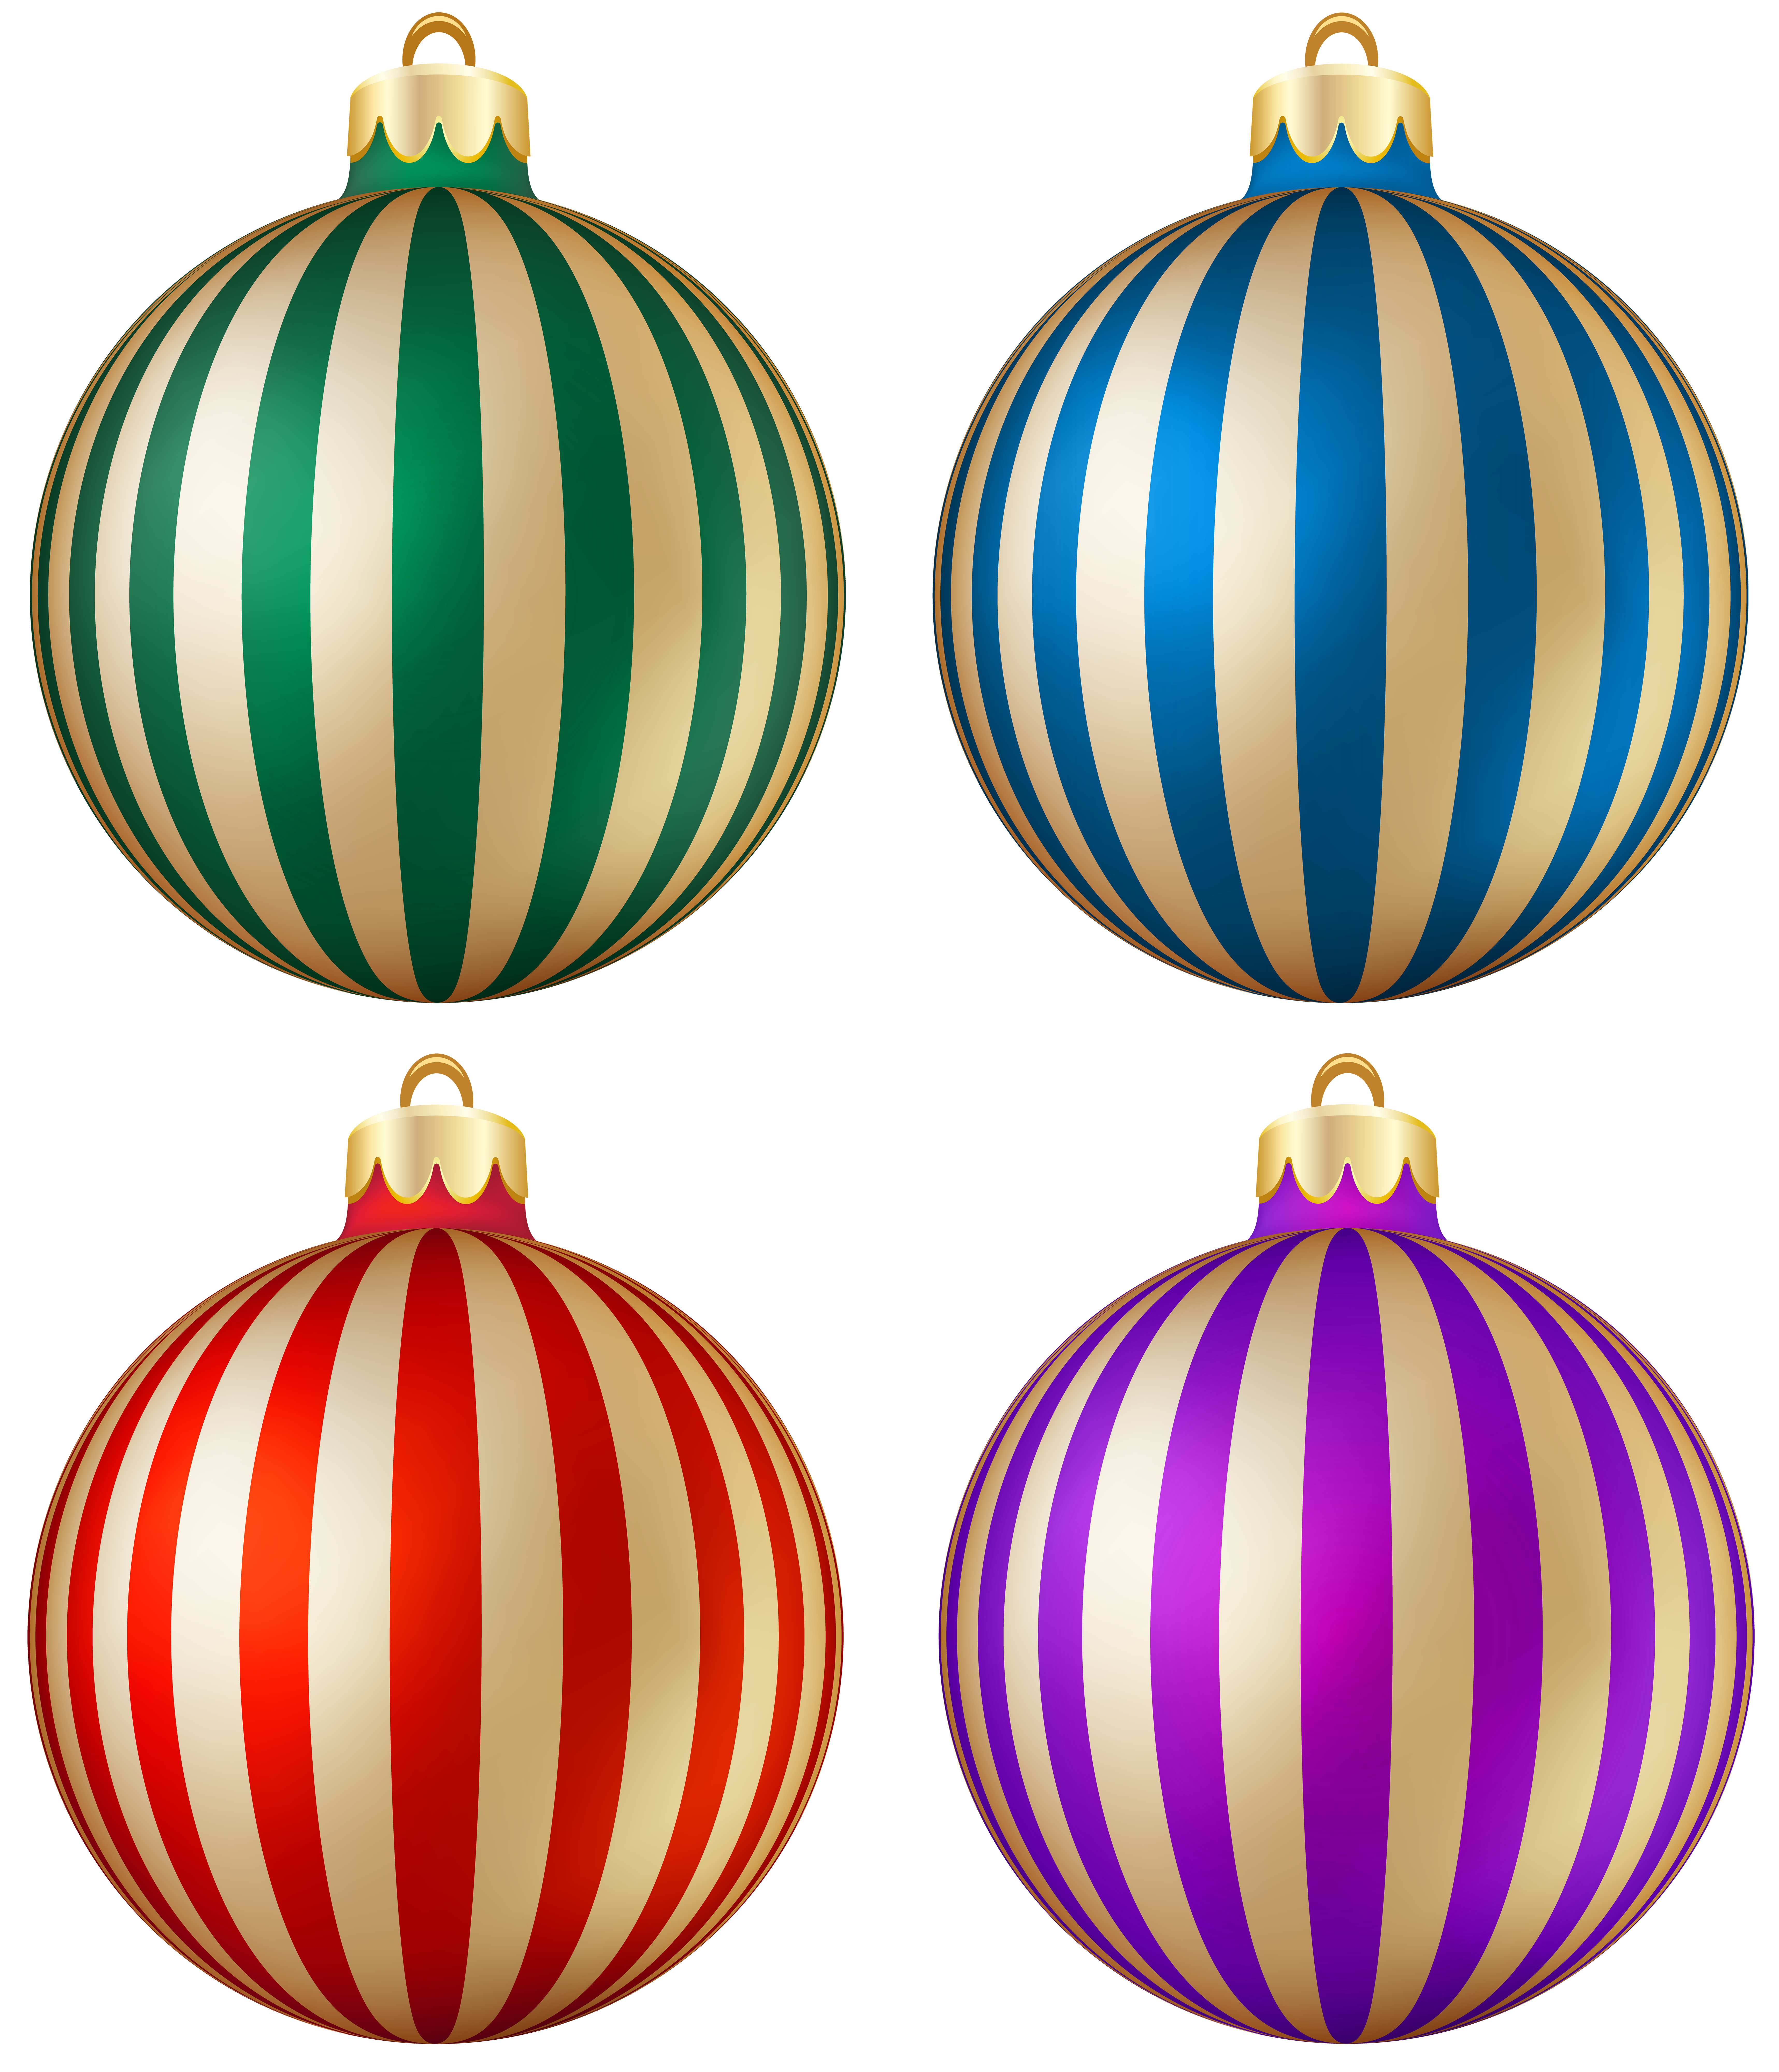 Stripes transparent christmas. Striped balls png image